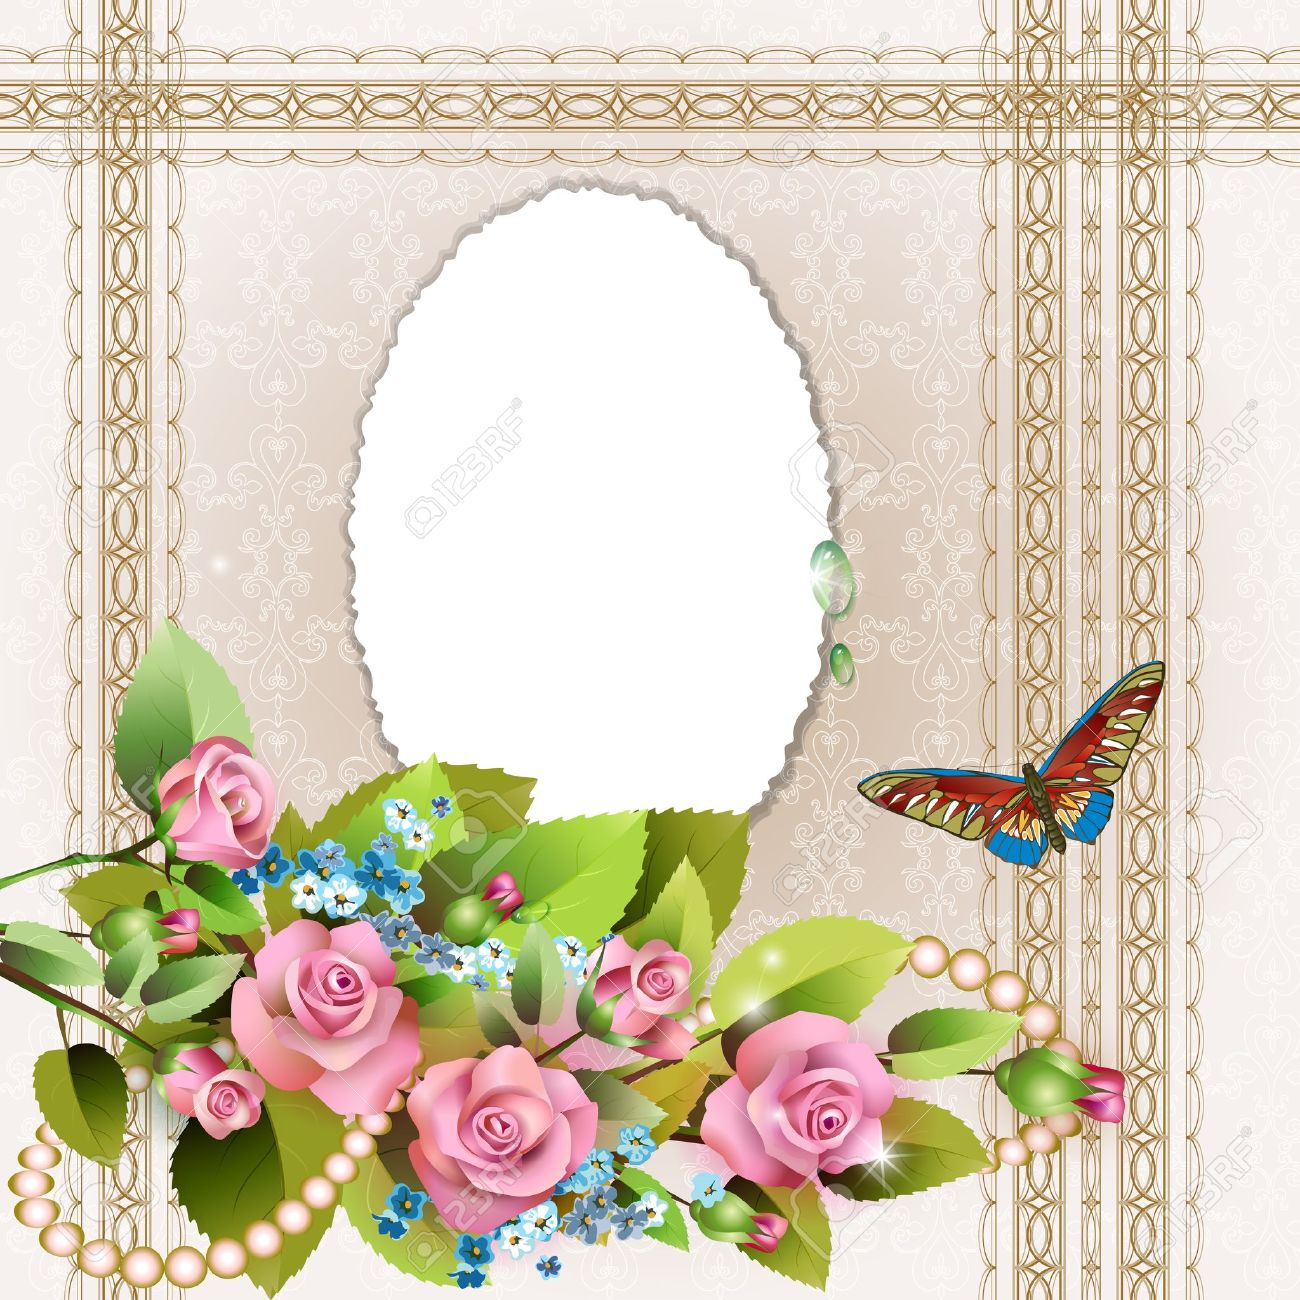 Frame With Pink Roses And Pearls On Romantic Background Royalty Free ...